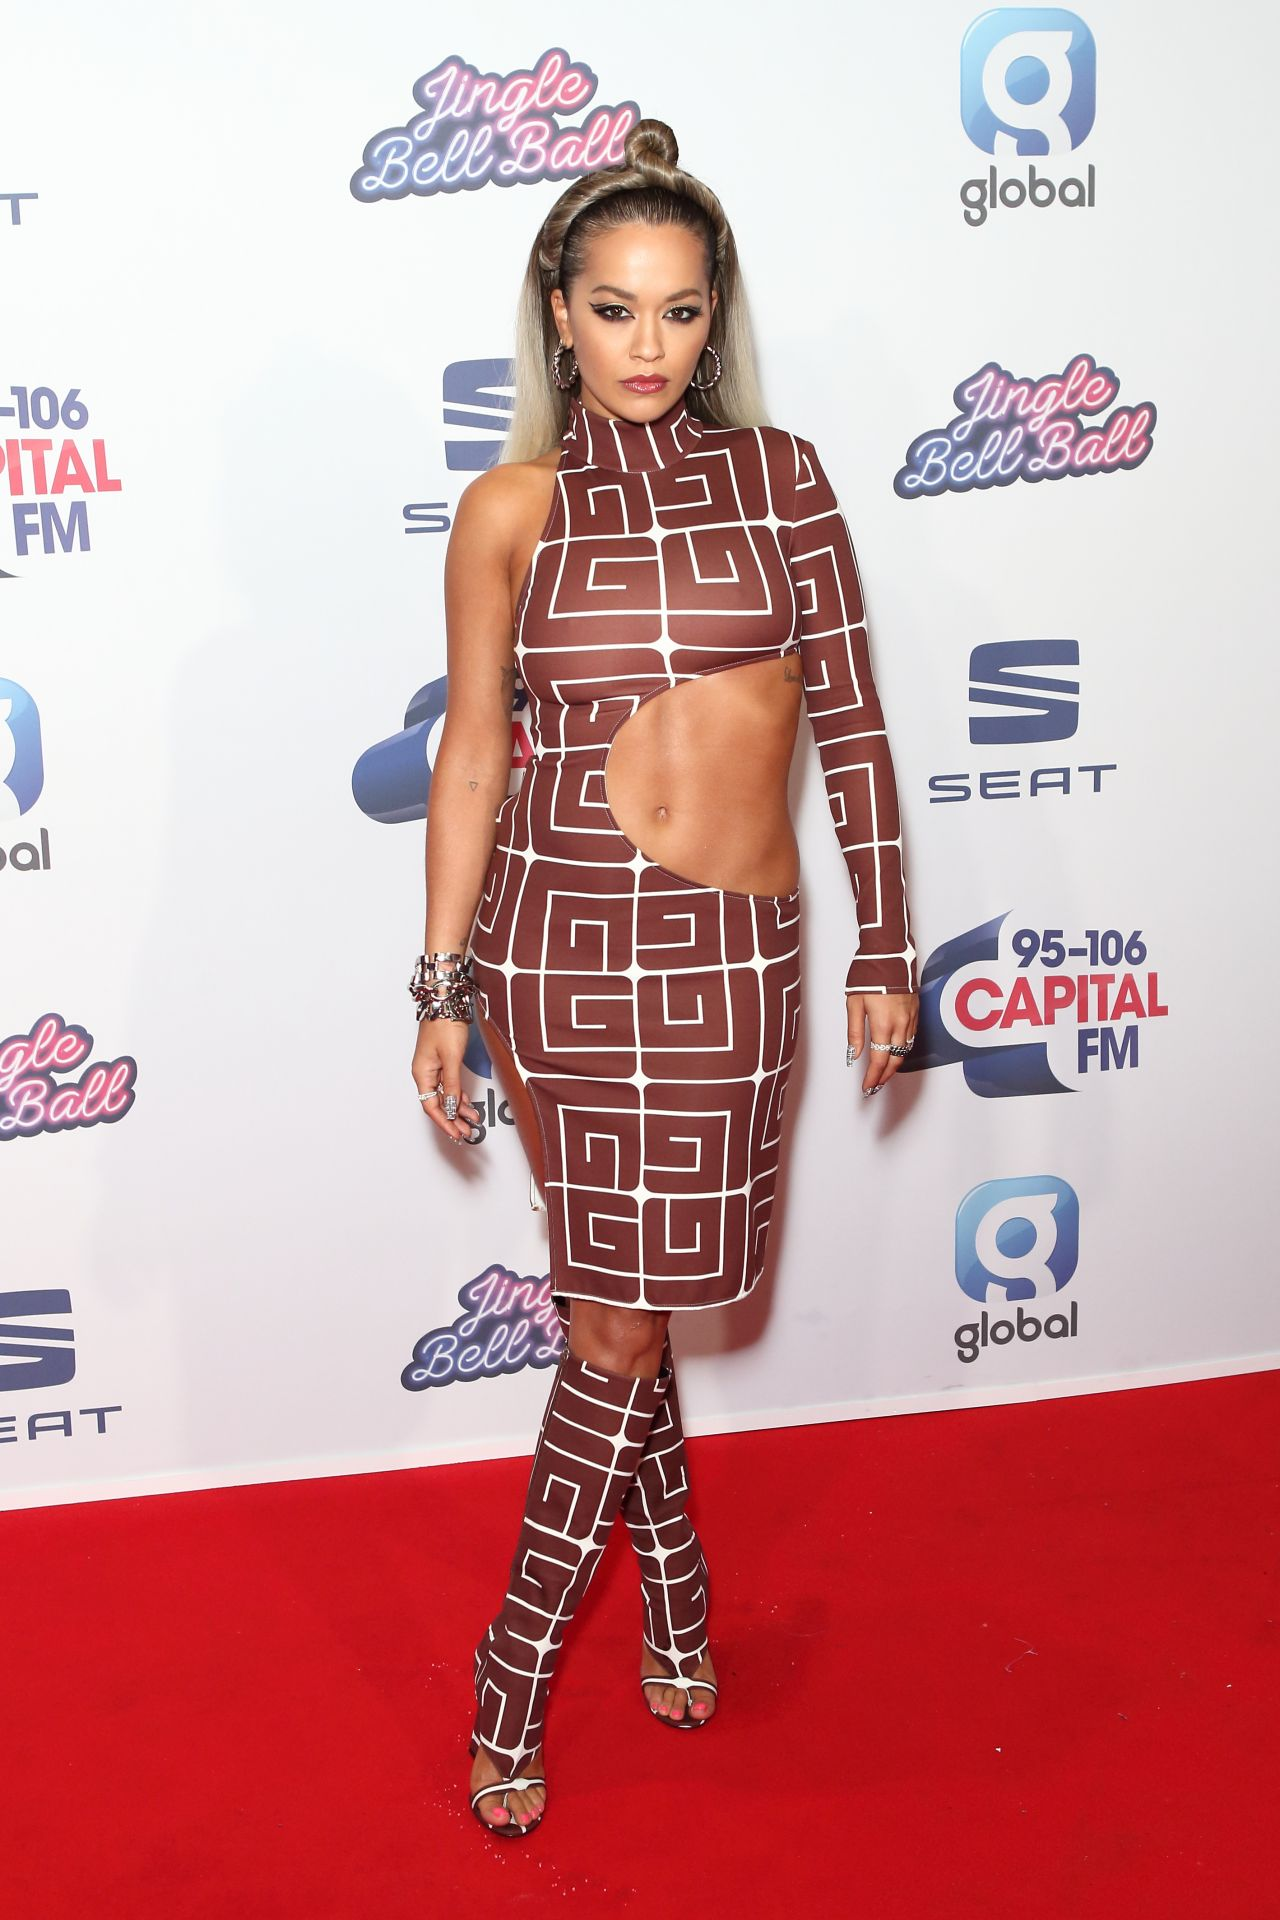 rita-ora-in-guy-laroche-2019-capitals-jingle-bell-ball-in-london